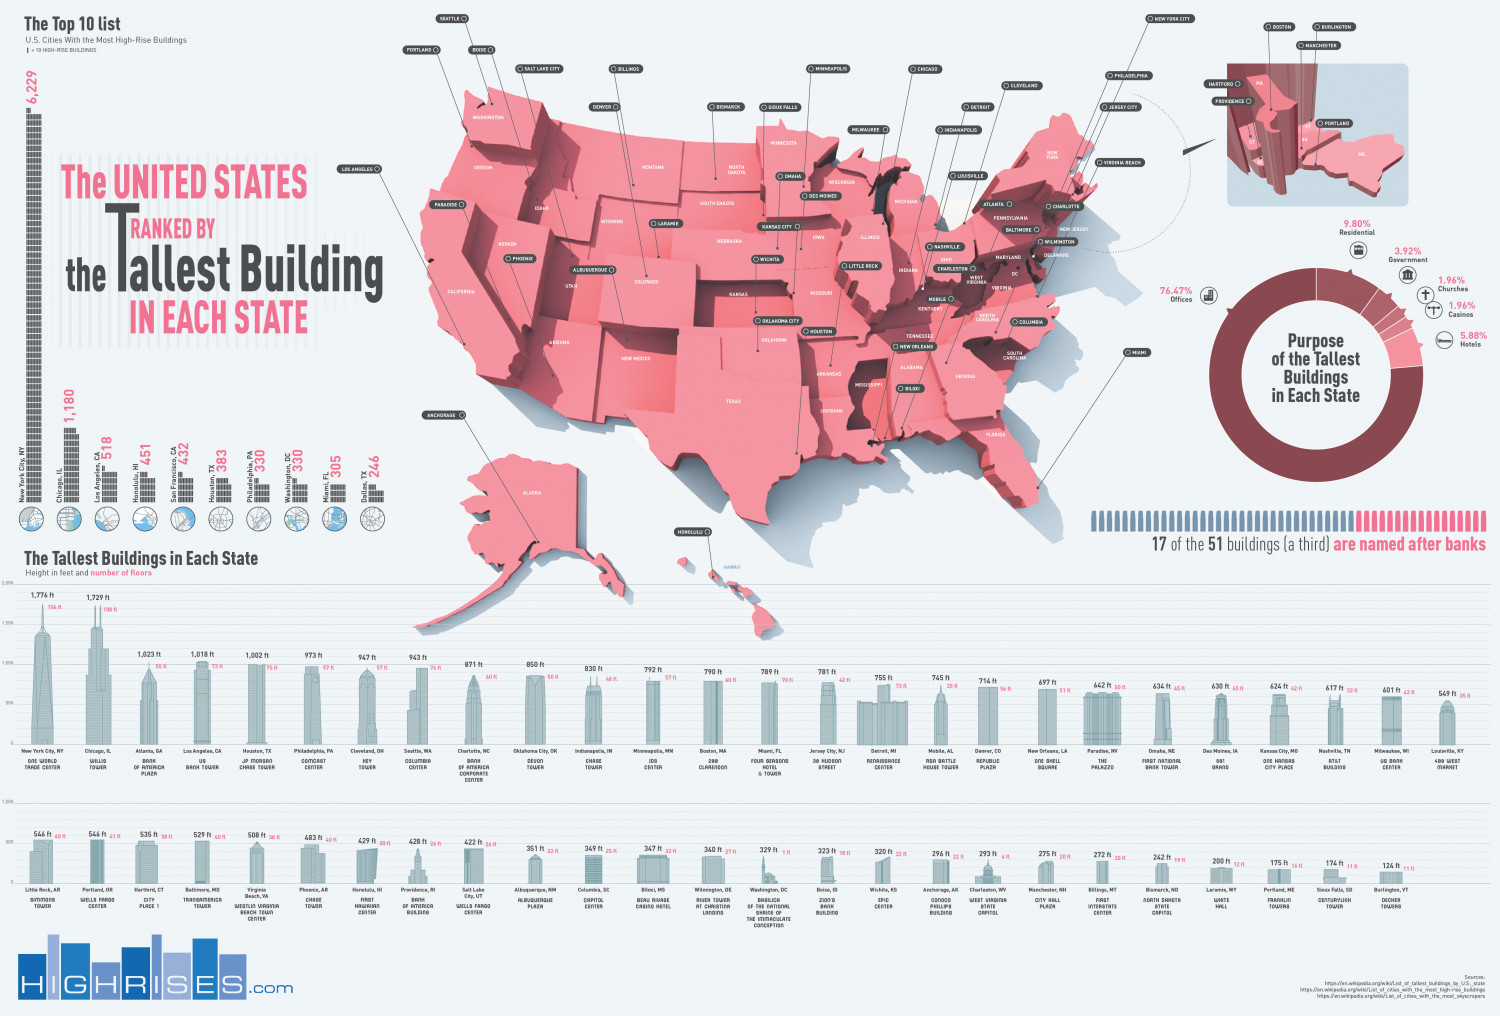 The United States Ranked By the Tallest Building Per State Infographic